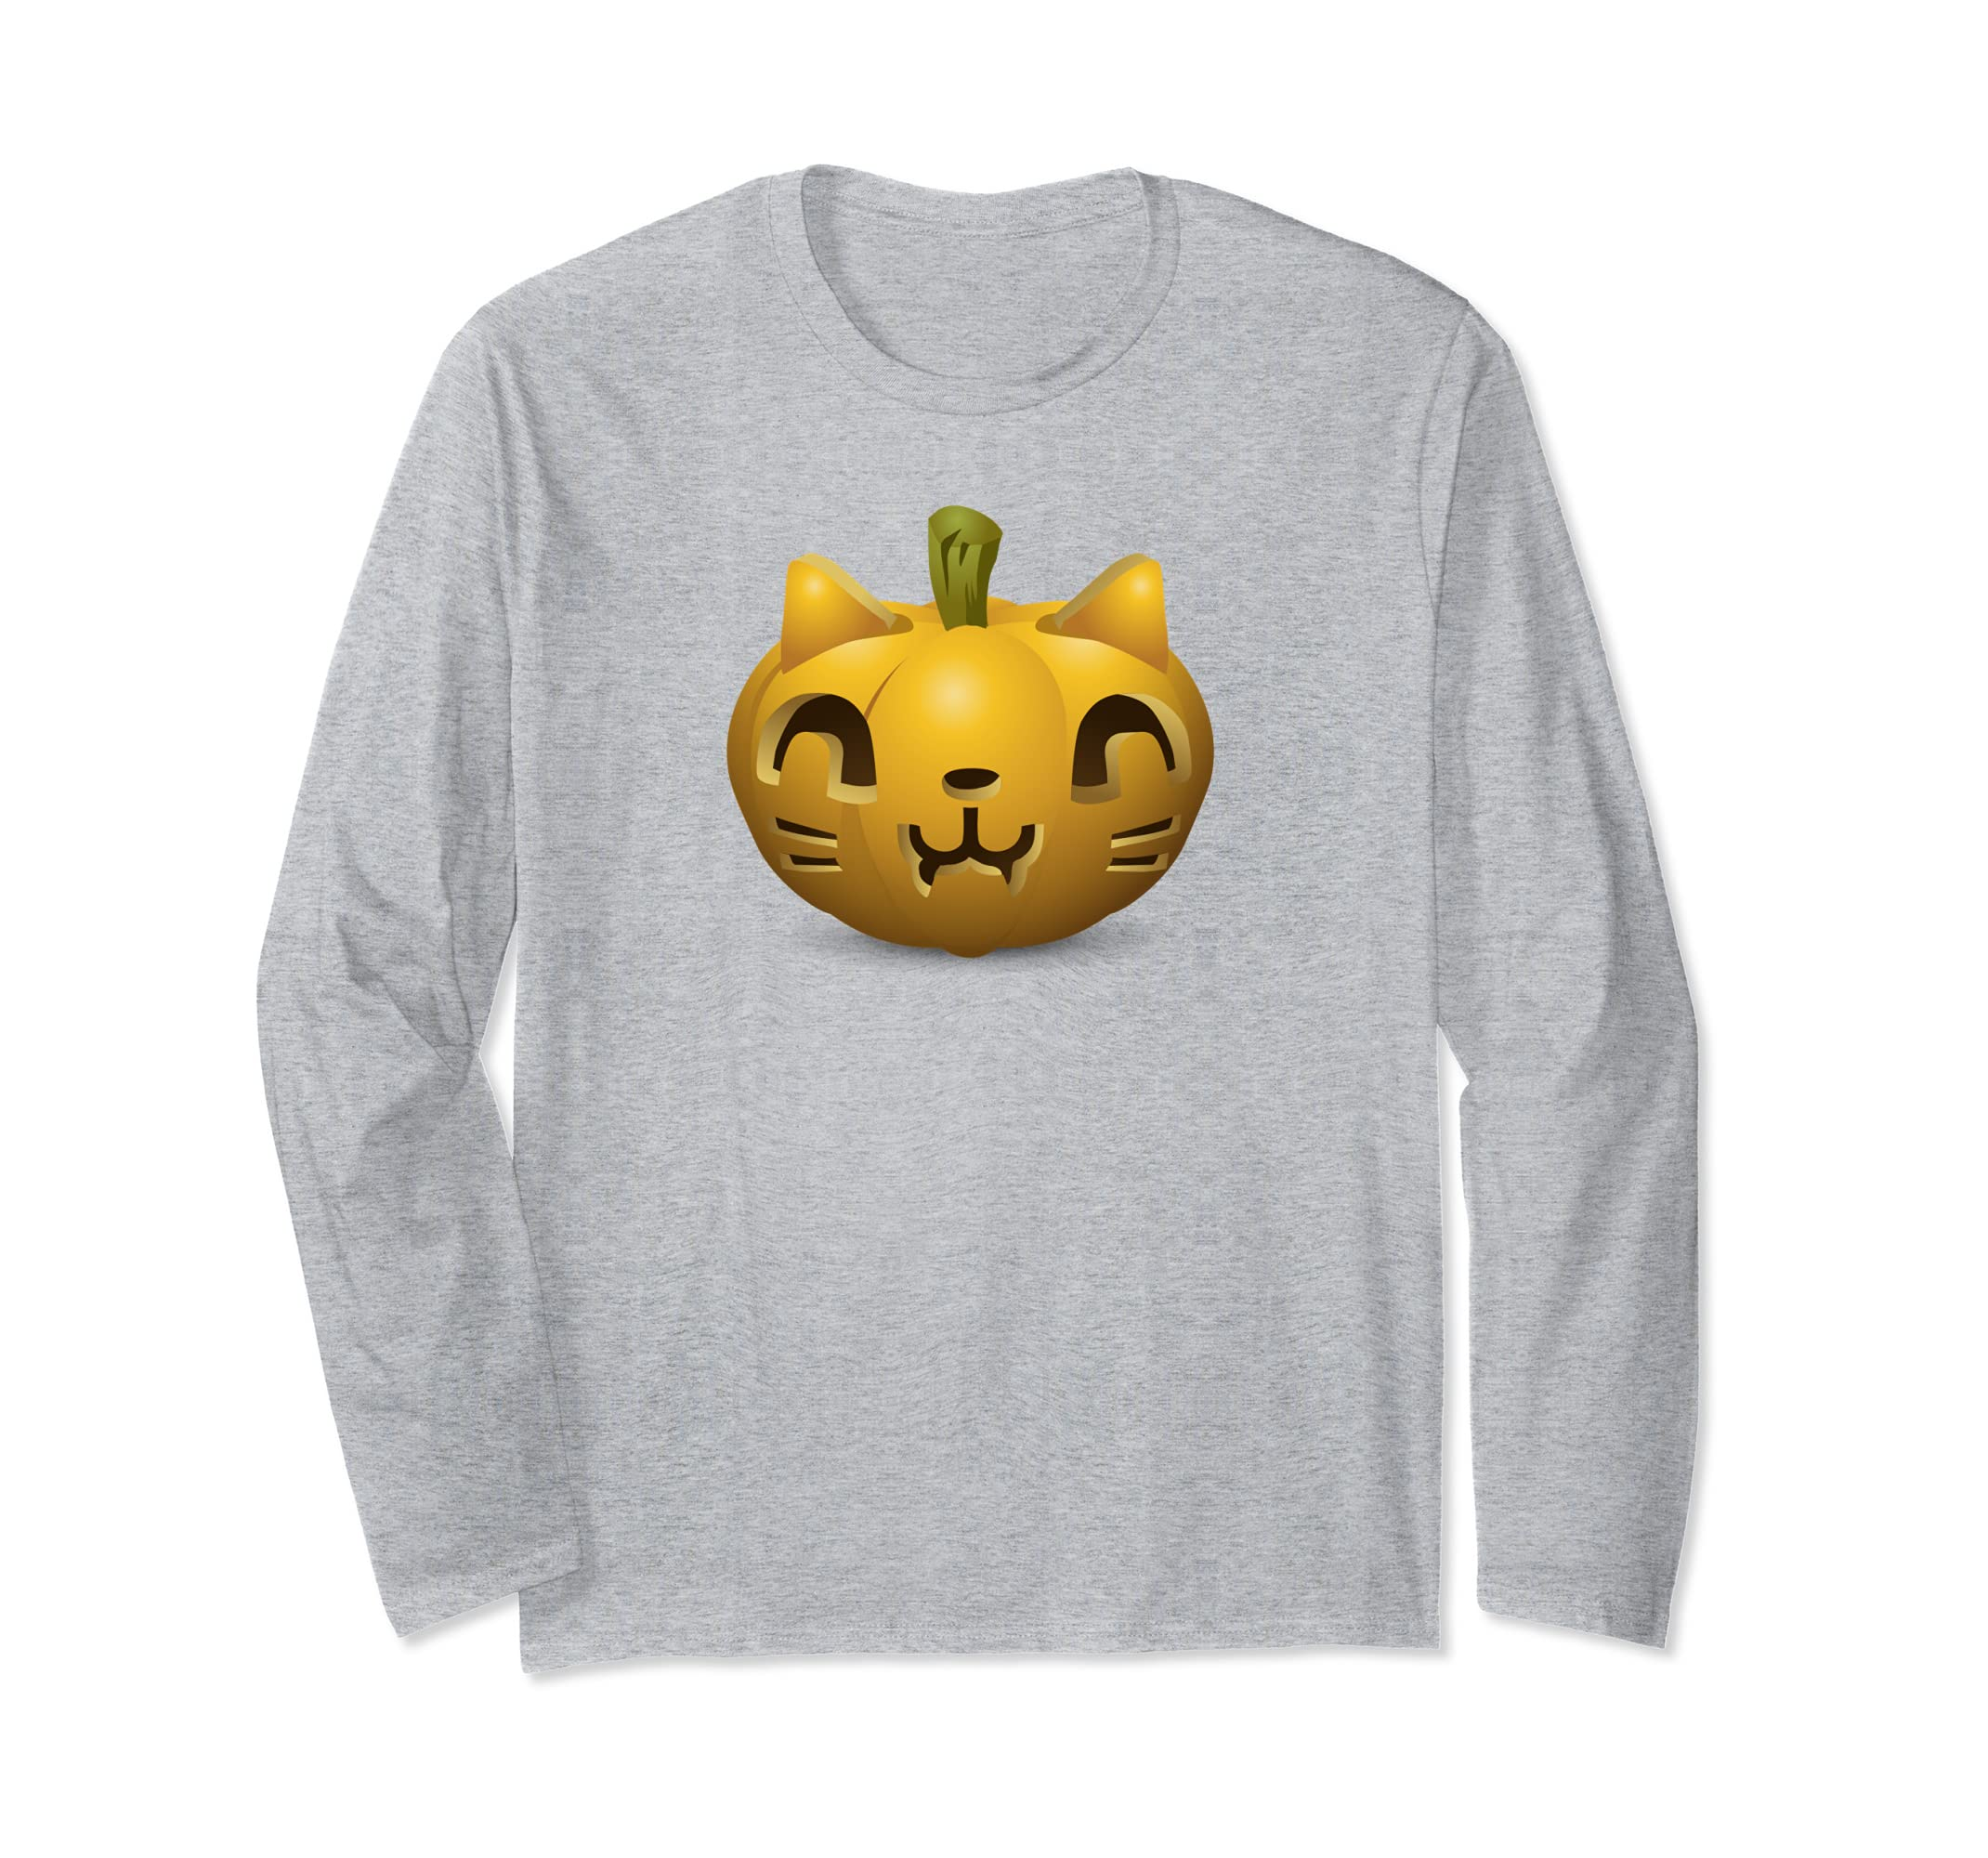 Halloween Costume Cat Long Sleeve Shirt Carved Pumpkin Cat-ANZ